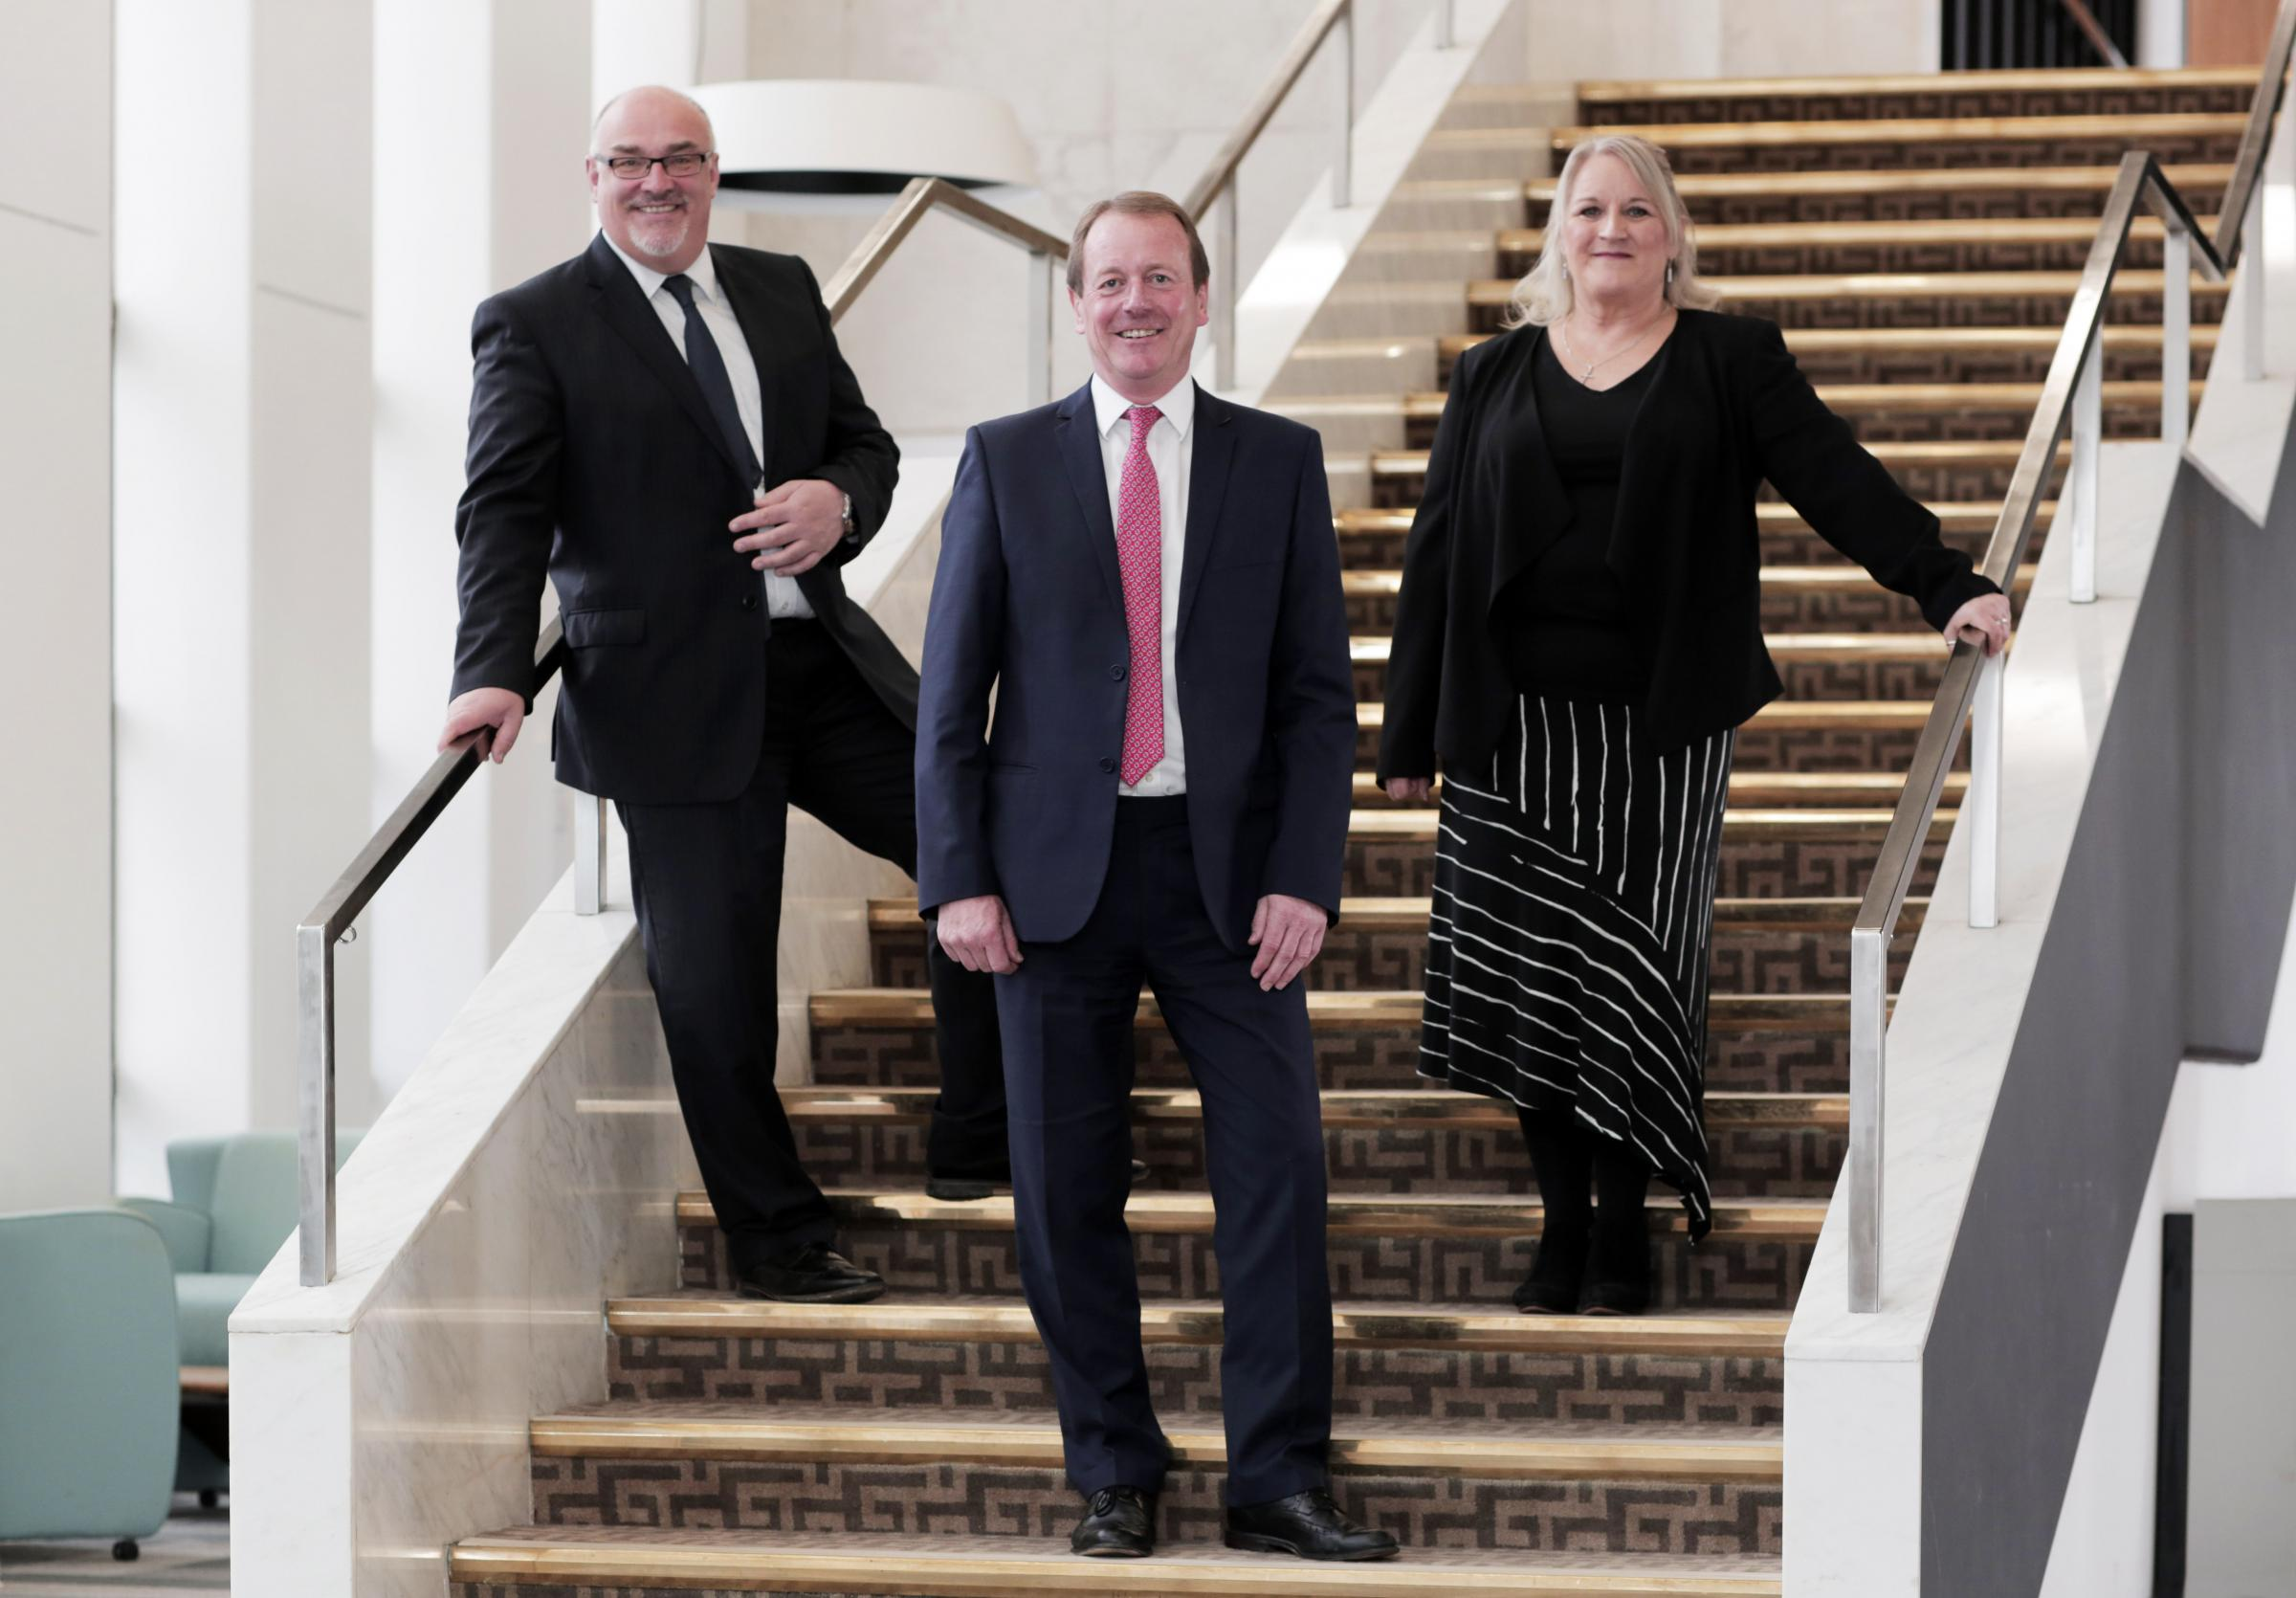 Ian Williams, Paul Wildsmith and Suzanne Joyner, Darlington Borough Council's new senior managment team. Photograph by Stuart Boulton.